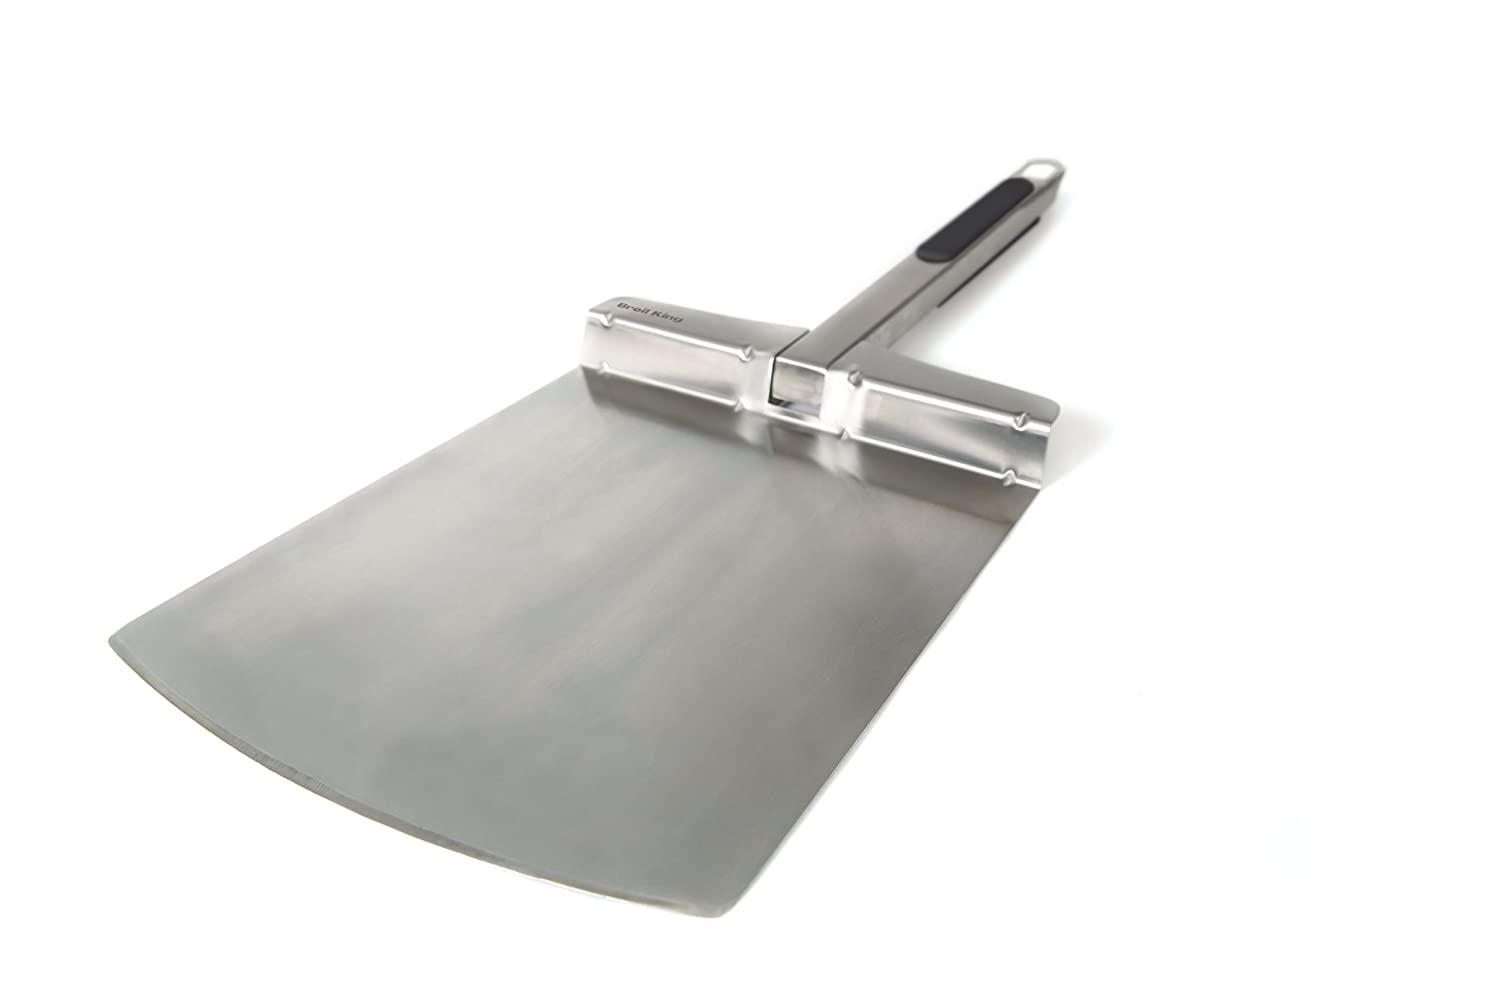 Broil King 69800 Stainless Pizza Peel